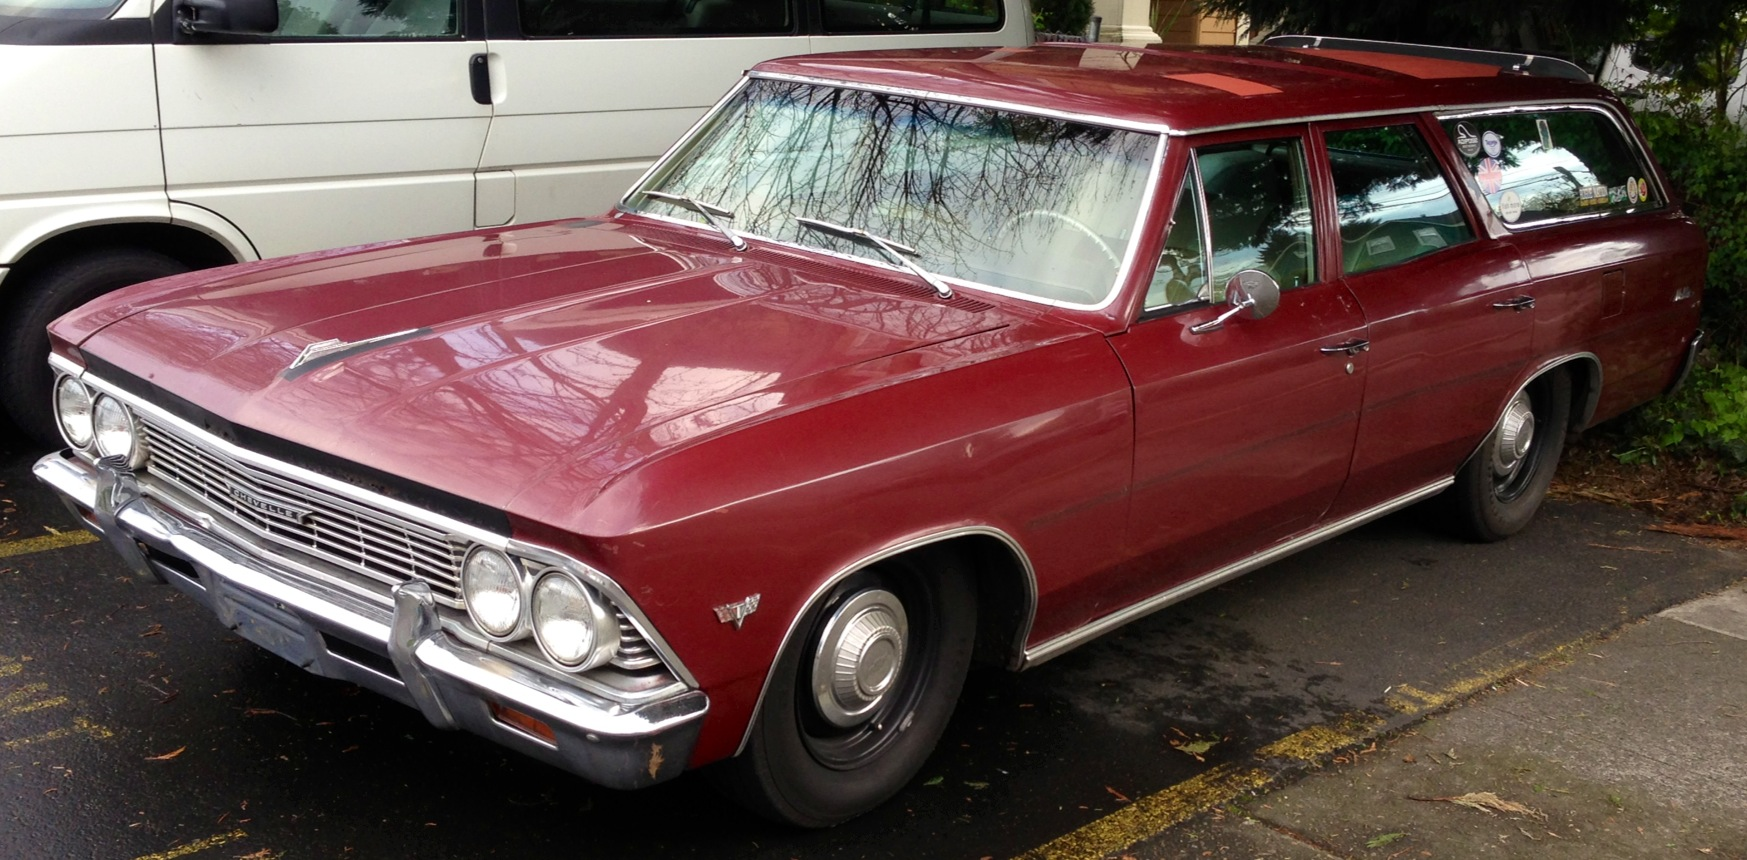 What We Saw Cars The Bridgetown Blog 1966 Chevy Chevelle Malibu Chevrolet Wagon